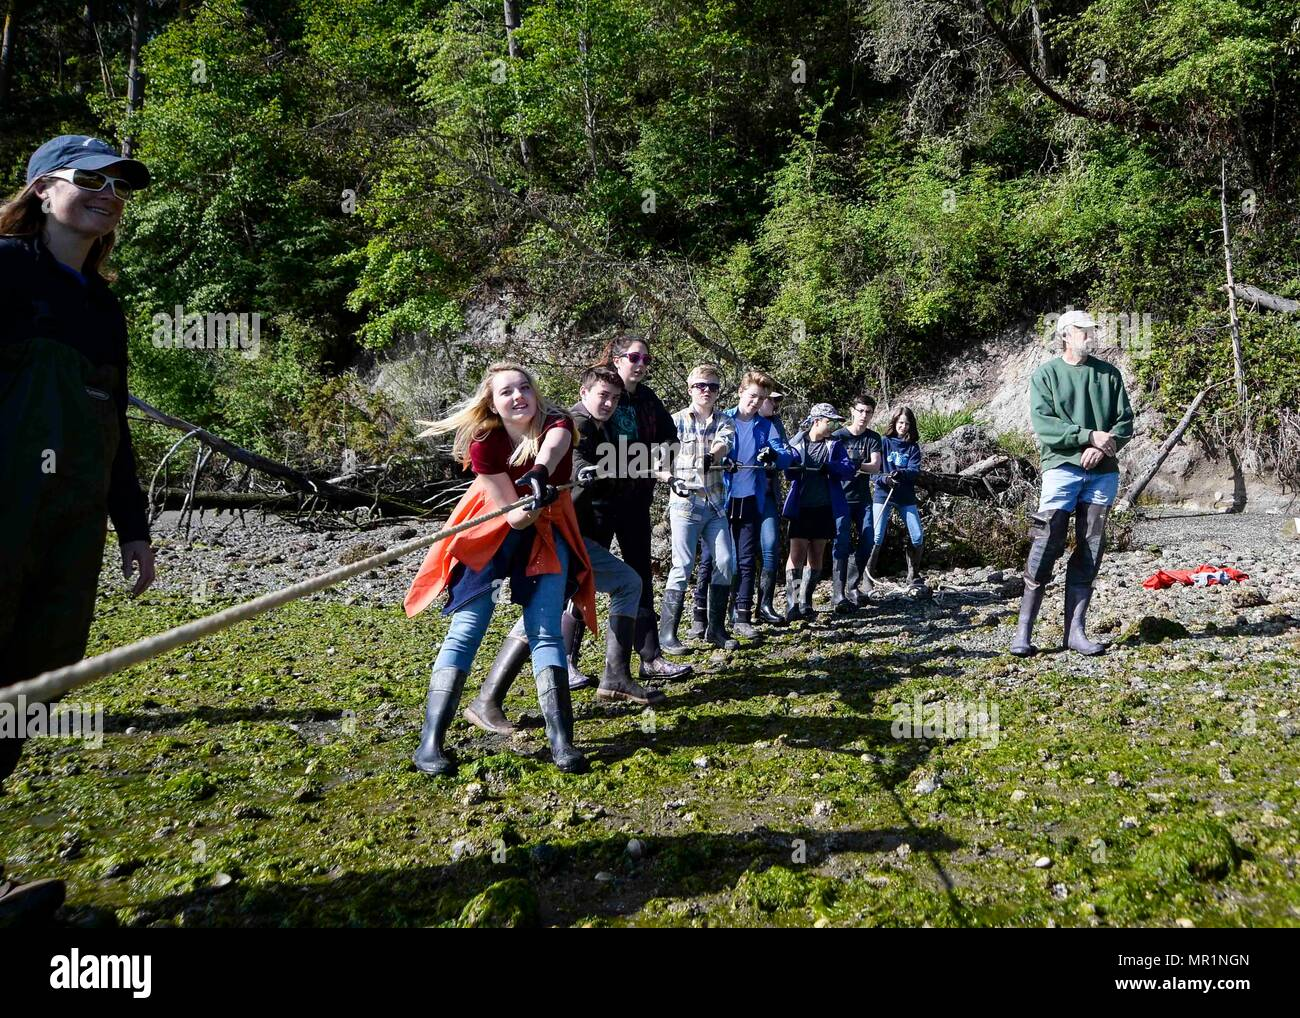 170428-N-VH385-046 INDIAN ISLAND, Wash., (April 28, 2017) – Students from Blue Heron Middle School heave on line to pull in a seining-net during a community outreach beach seining with the United States Geological Survey (USGS) at Naval Magazine Indian Island. This is the third year the USGS has teamed up with Blue Heron Middle School and Naval Magazine Indian Island to conduct beach seinings in preparation for the Kilsut Spit waterflow to be opened between Marrowstone and Indian Island. (U.S. Navy photo by Mass Communication Specialist 3rd Class Wyatt L. Anthony) - Stock Image